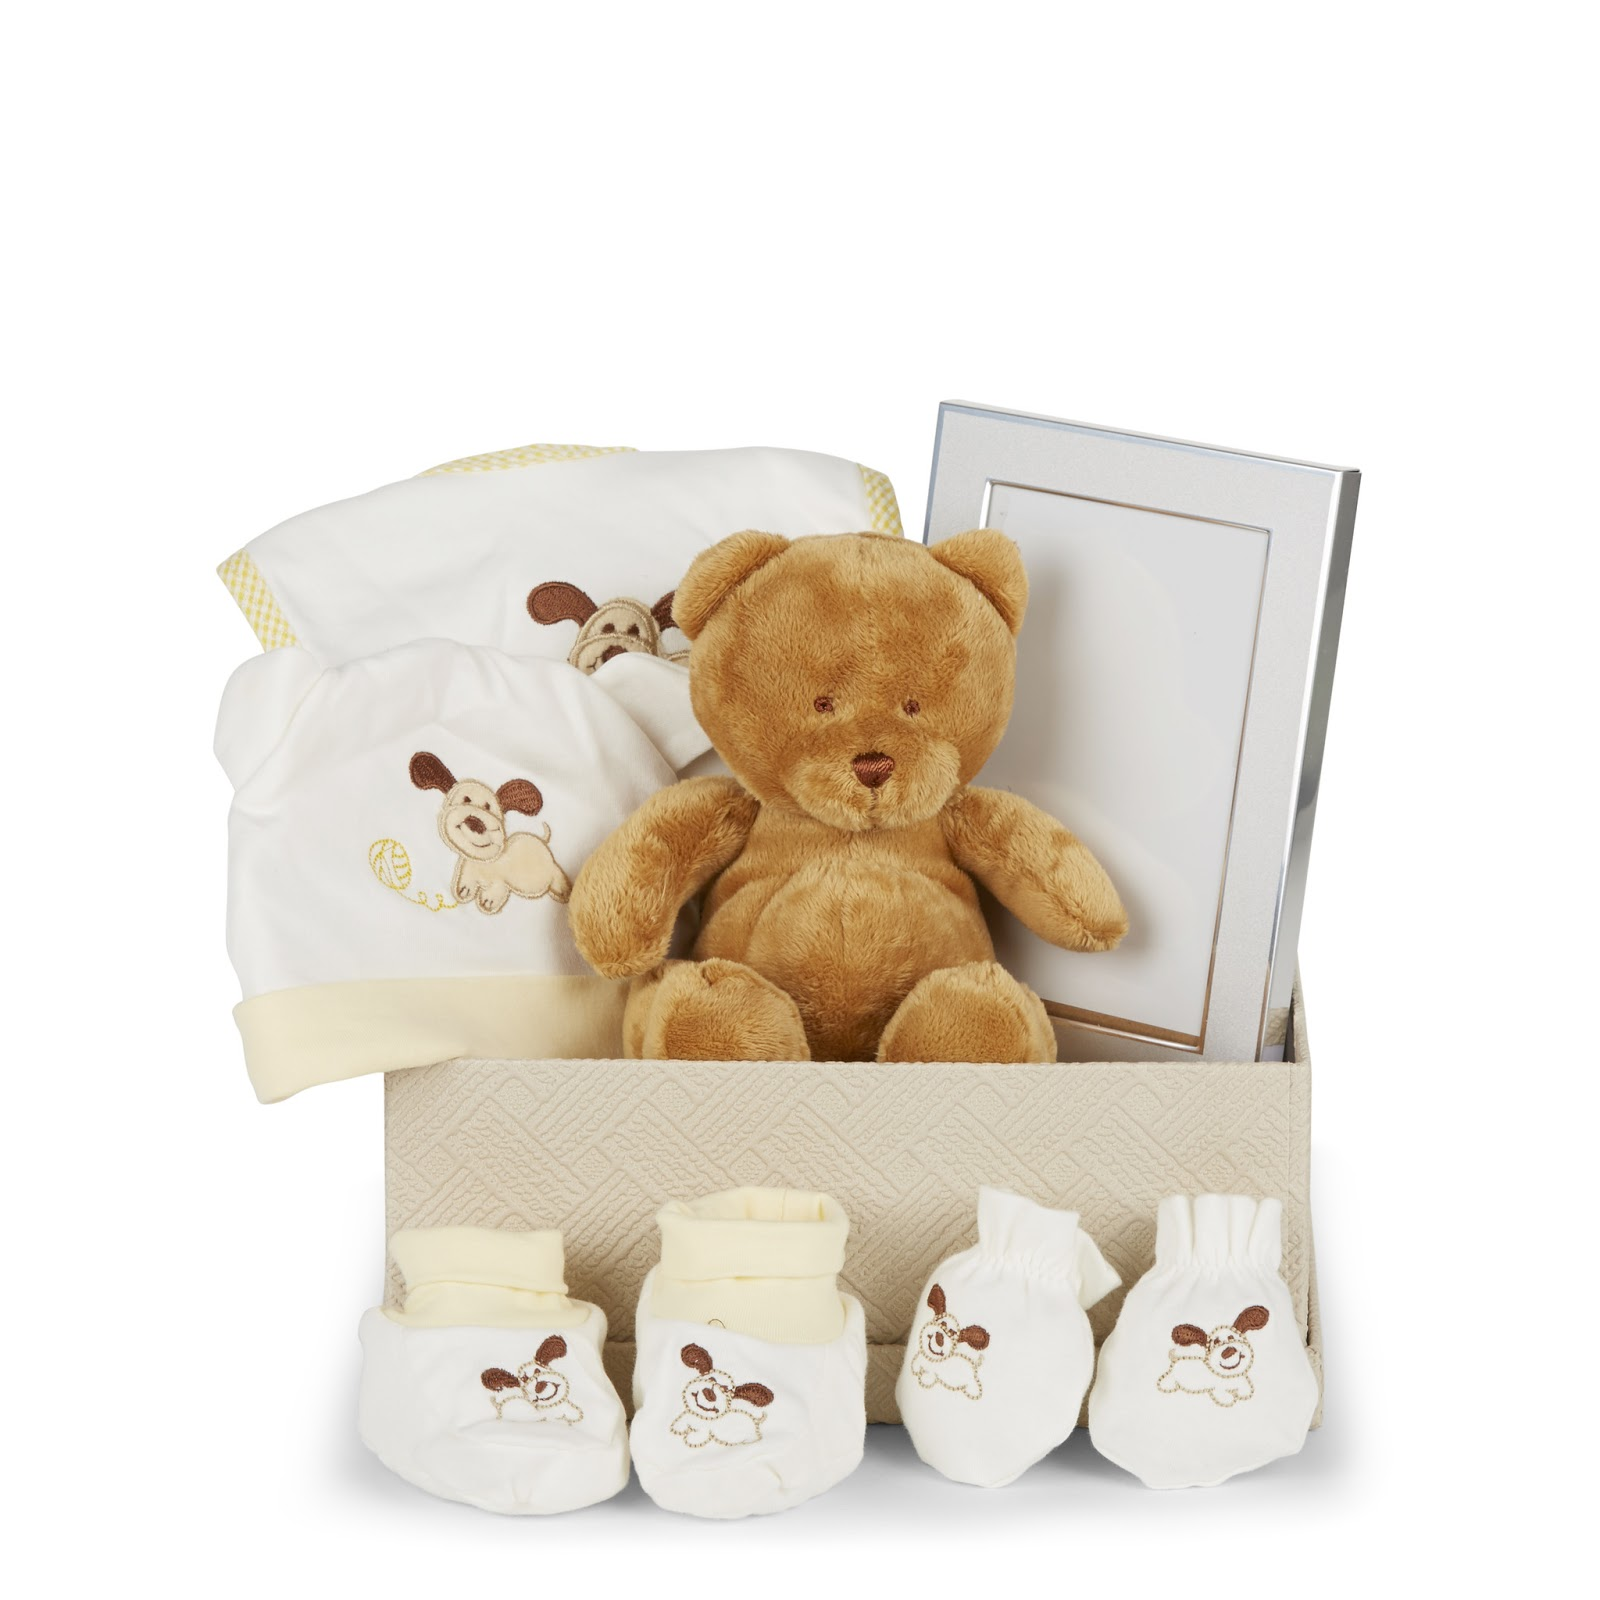 Memorable Baby Gifts Australia : Named personalised gifts ultimate guide for unique and